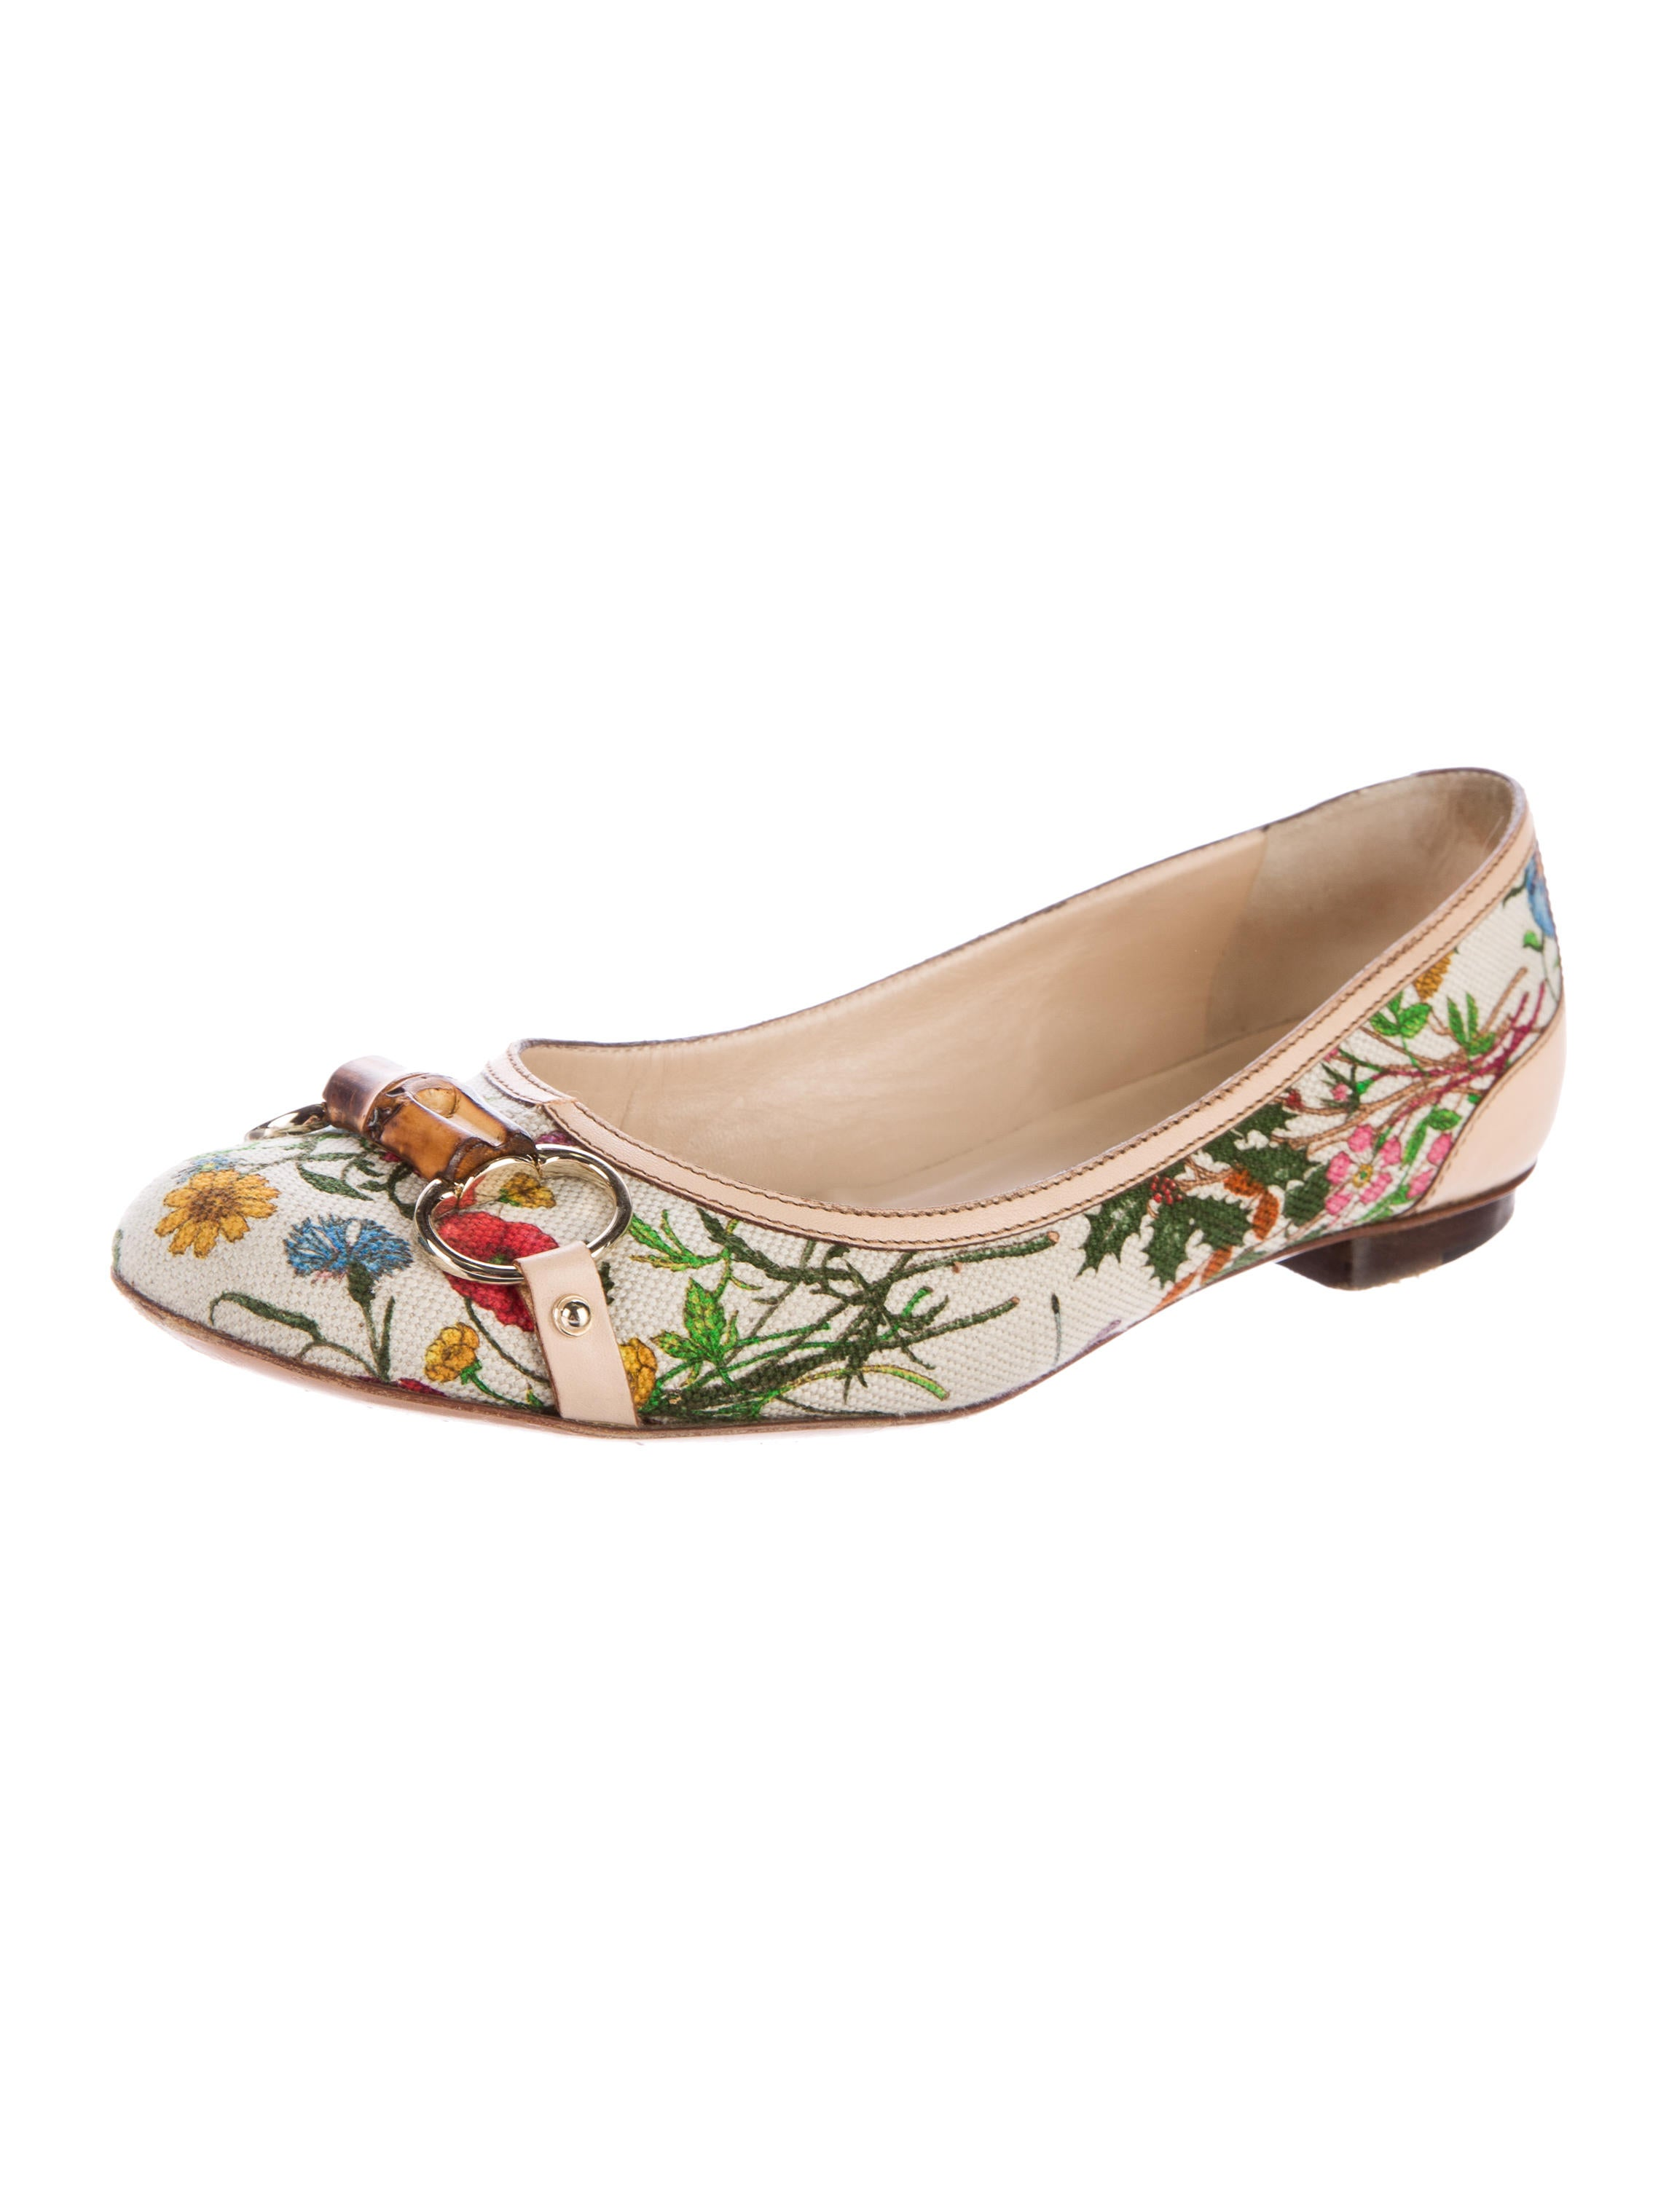 gucci flora horsebit flats - shoes